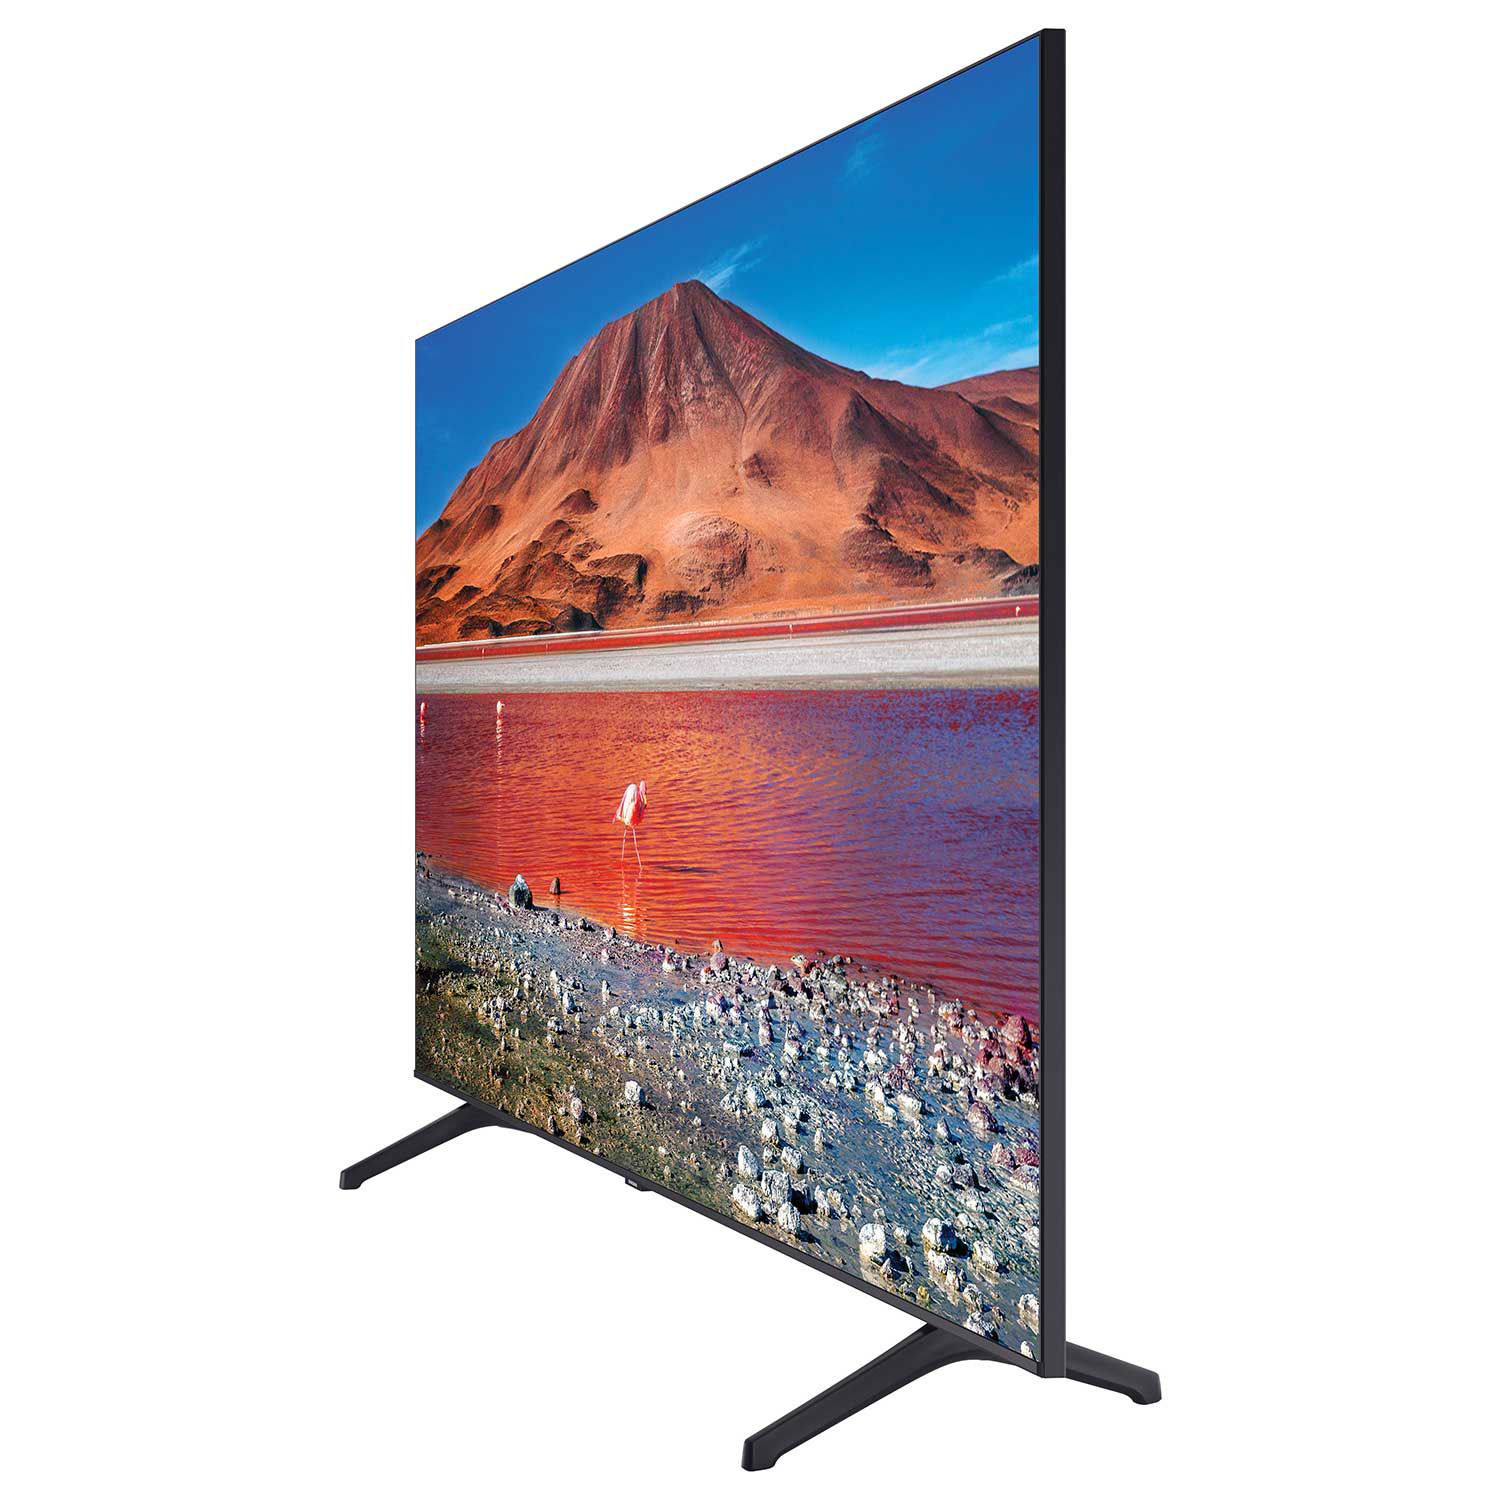 Picture of 65 Inch Samsung  TU7000 4K Smart TV with Alexa